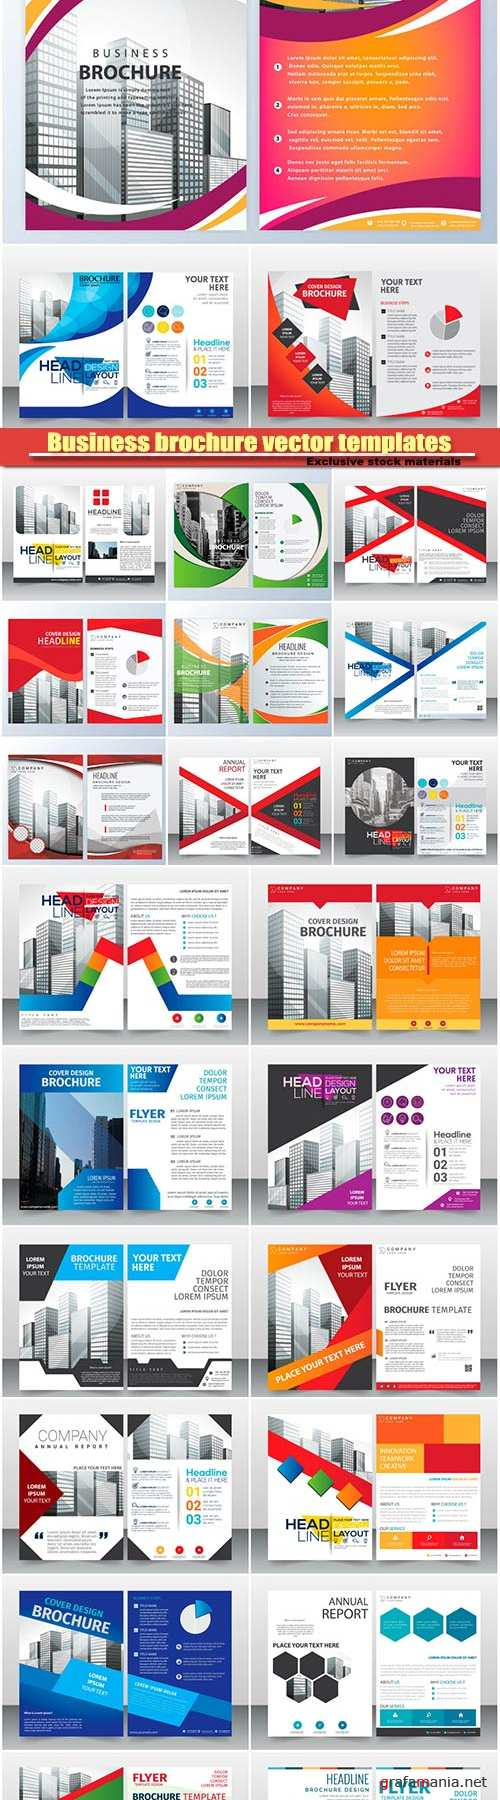 Business brochure vector templates design #16